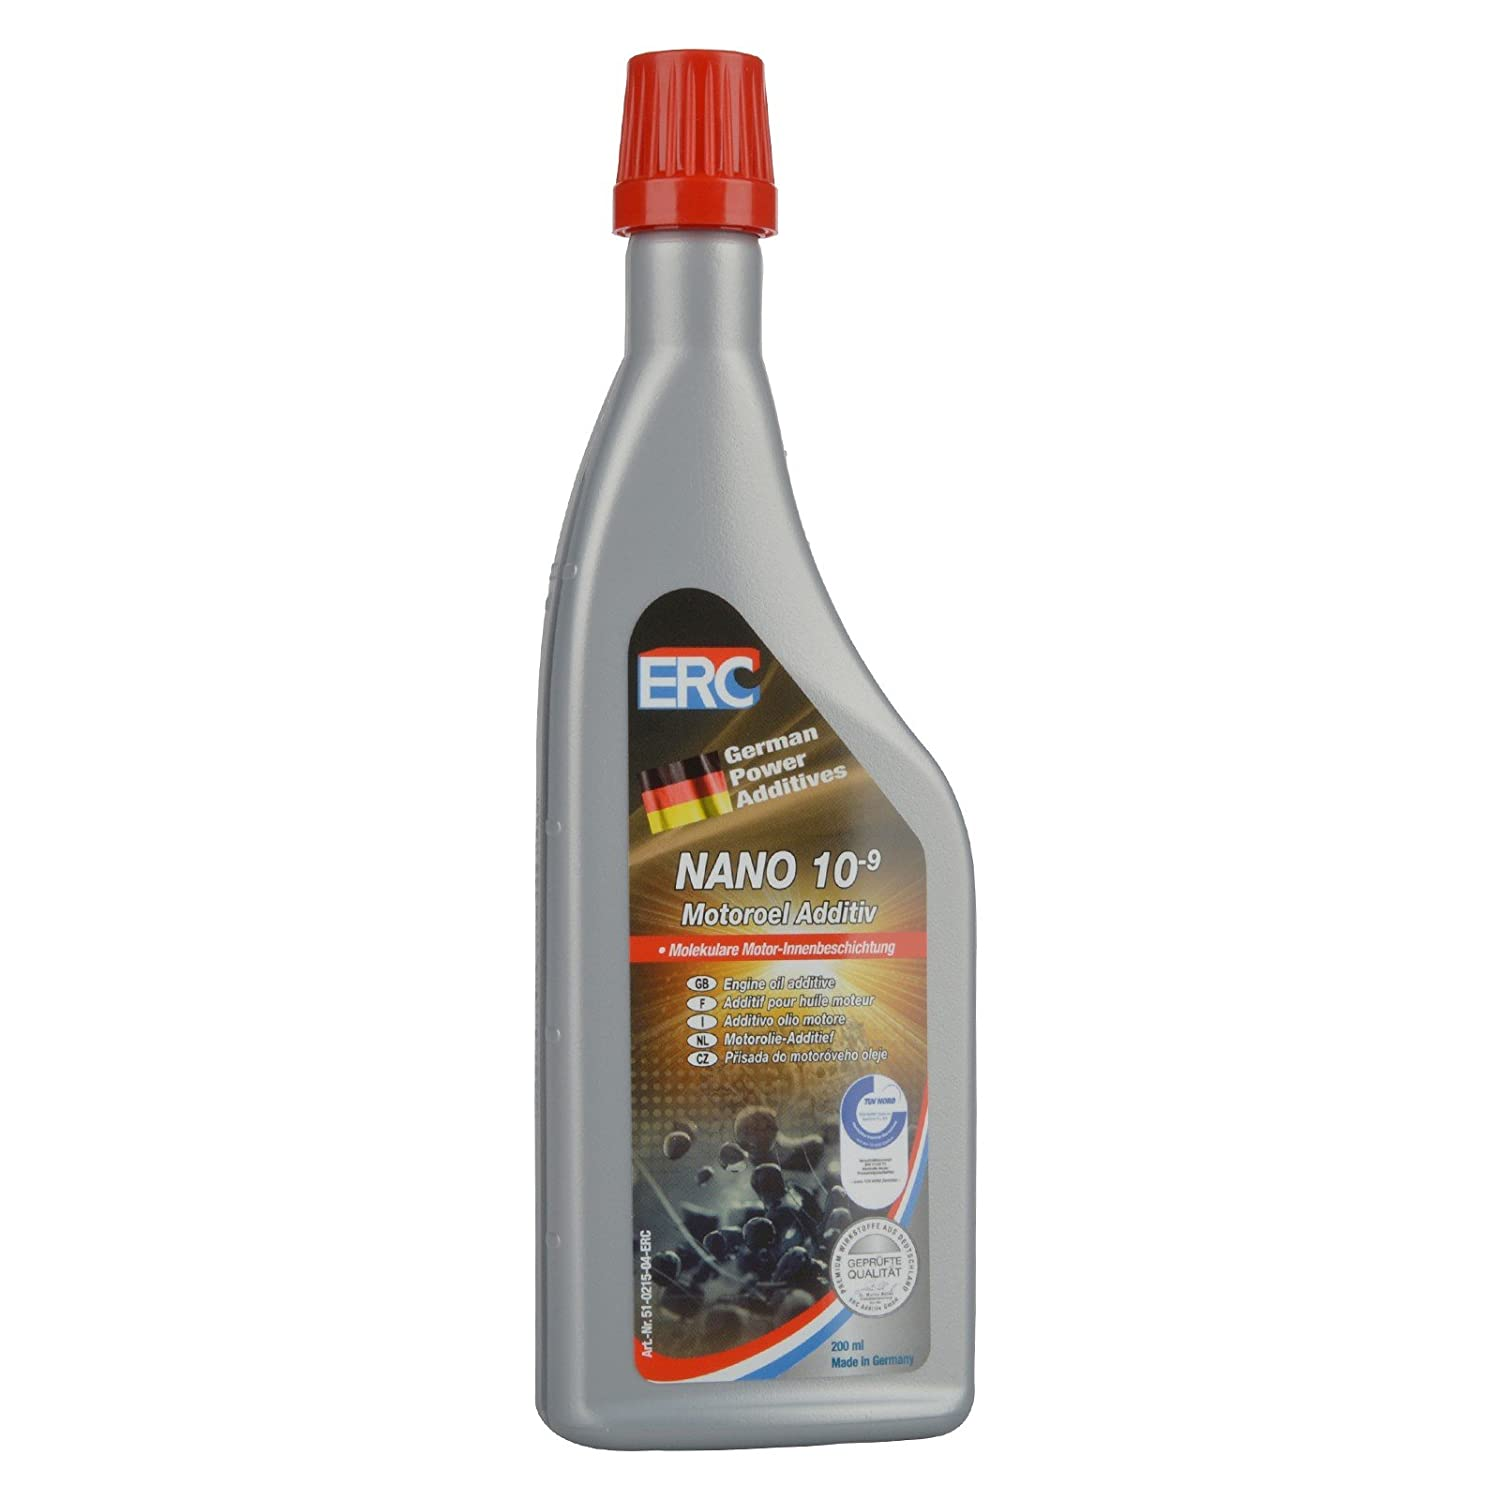 Erc Nano 10 9 Motor Oil Additive Amazon Co Uk Car Motorbike